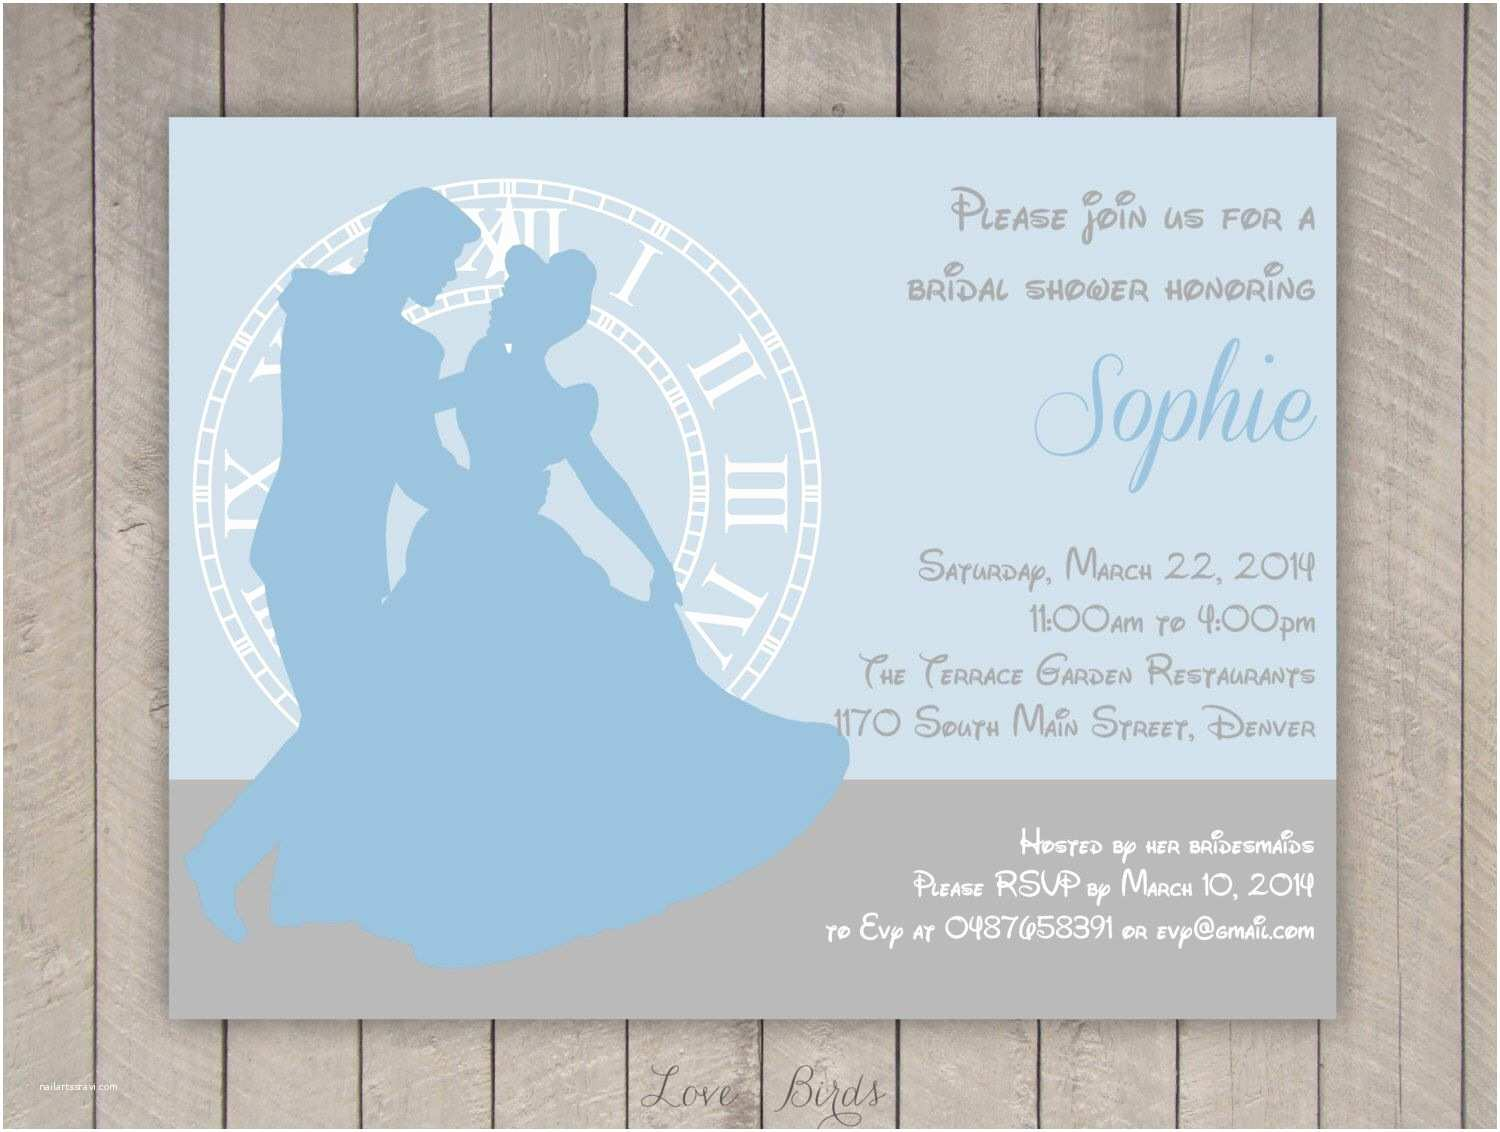 Office Depot Wedding Invitations Bridal Shower Invitation Personalize File then Print